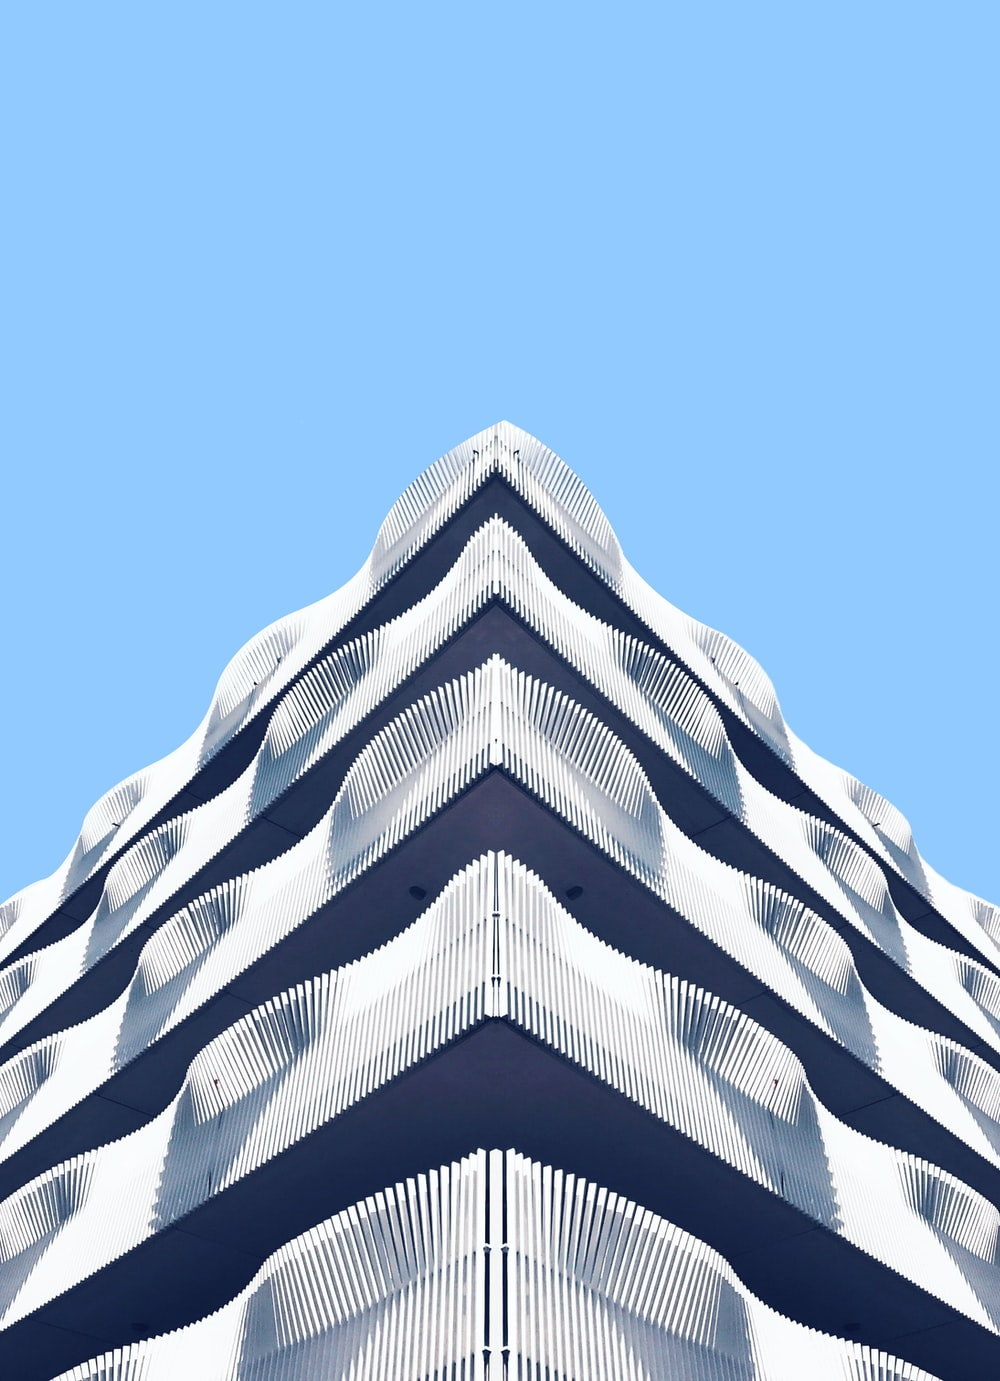 architectural photography of white structure